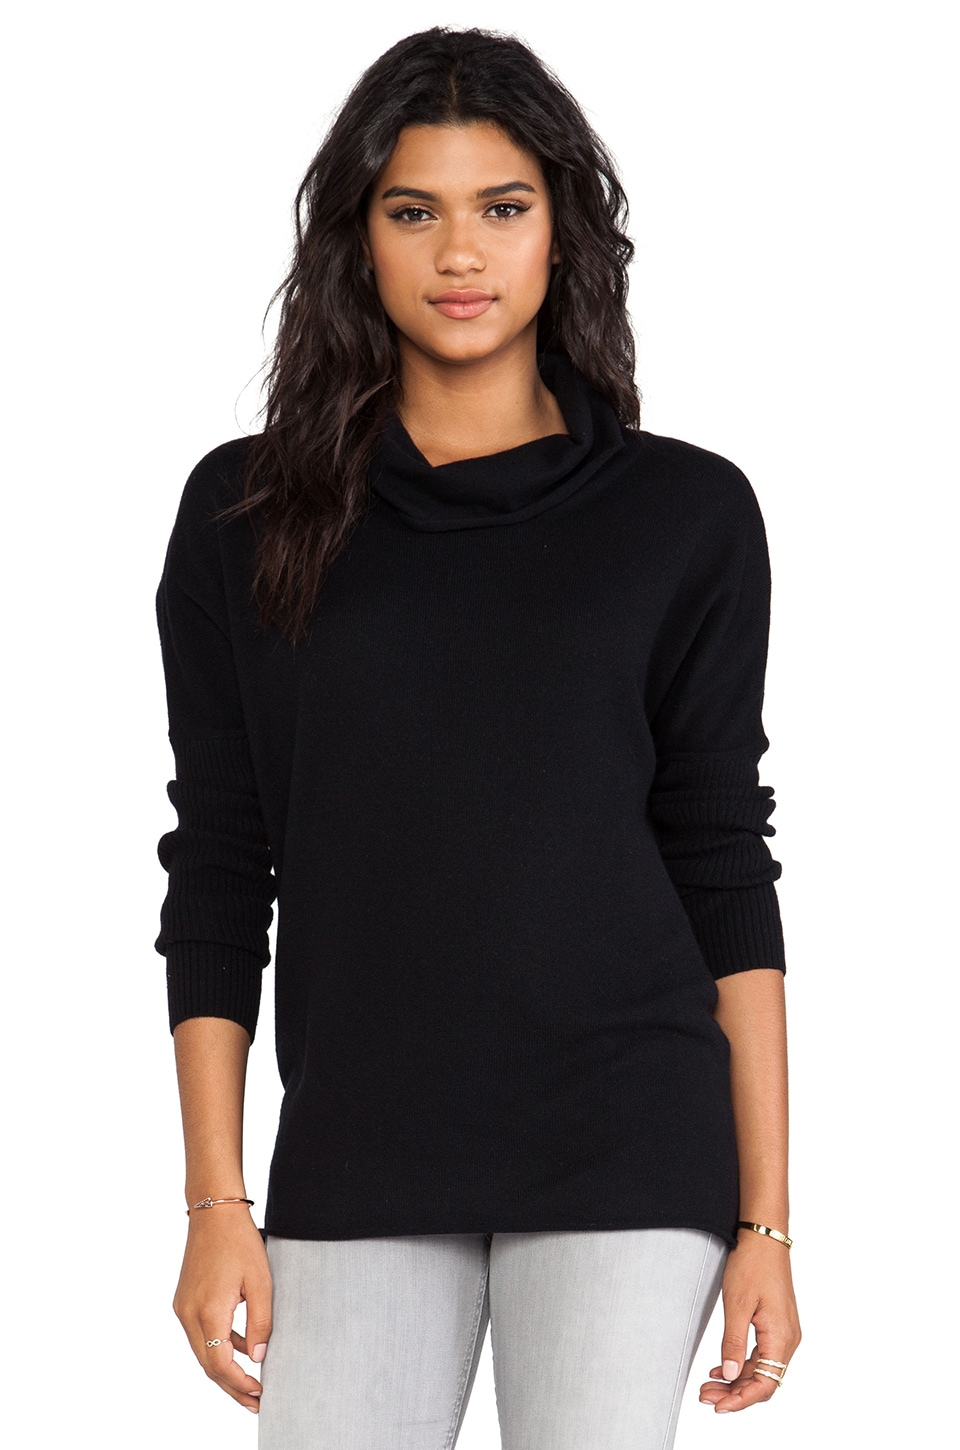 LA Made Drop Shoulder Cowl Neck Top in Black